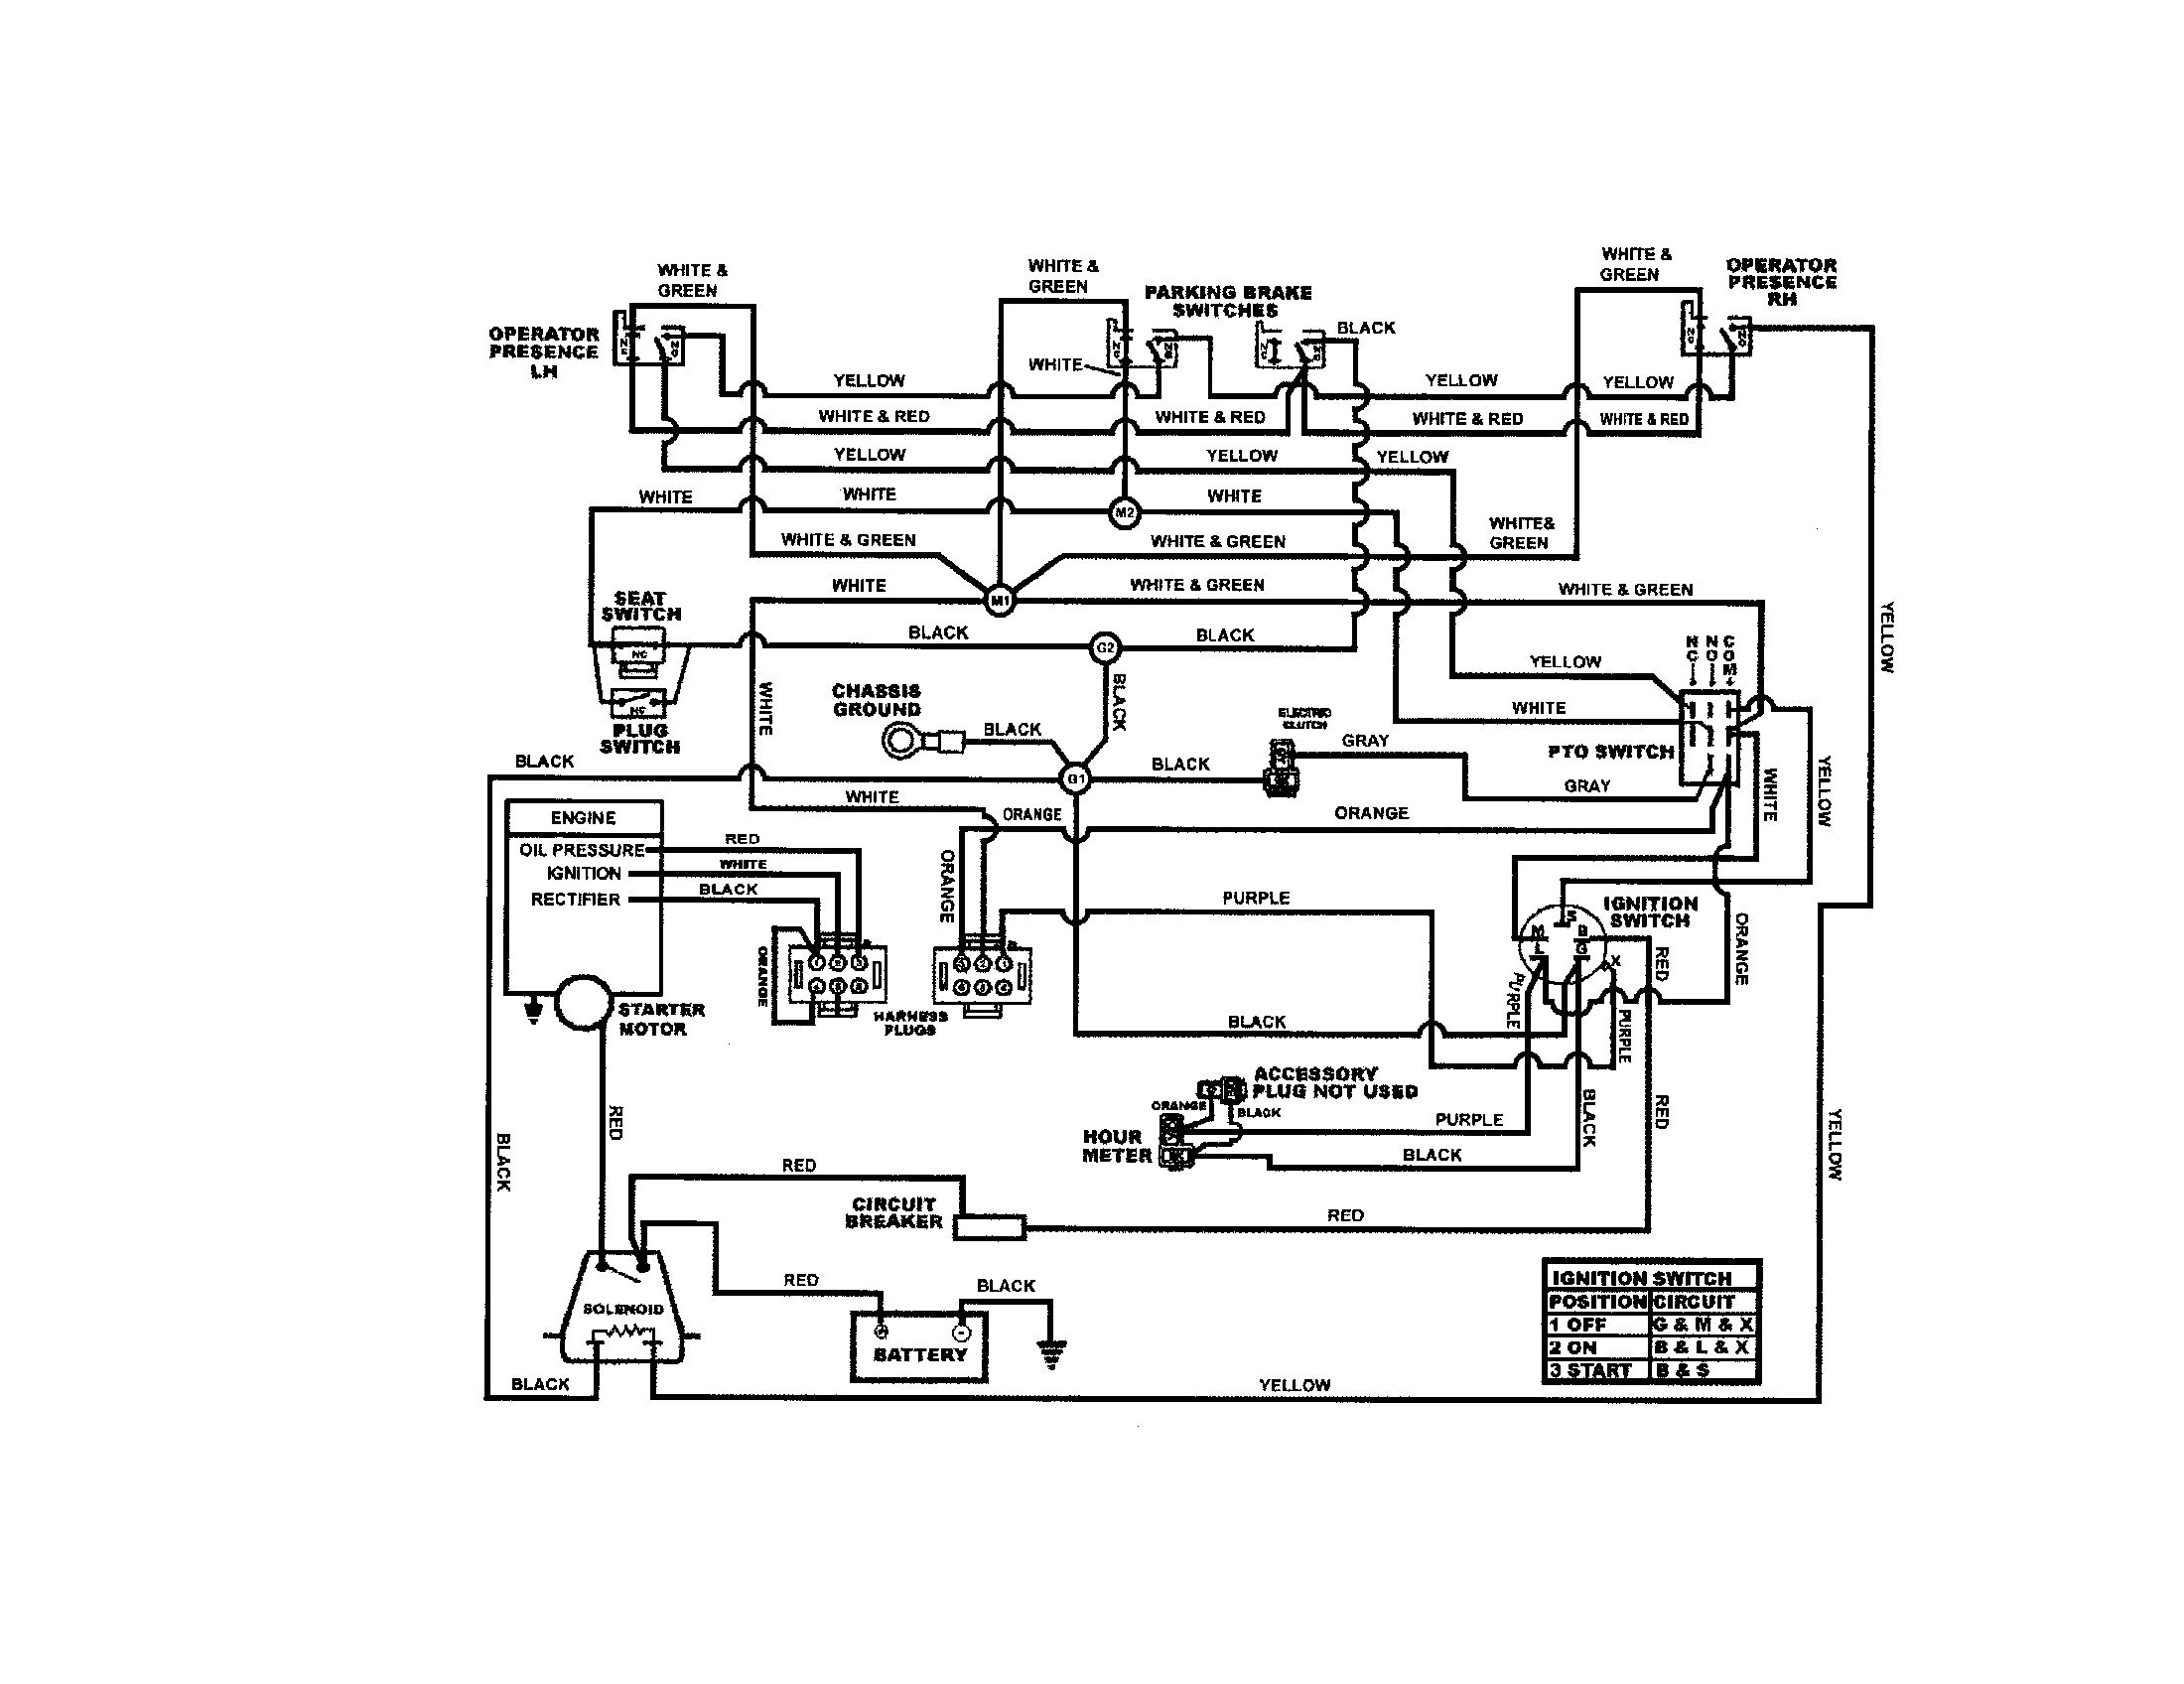 8hp briggs and stratton wiring diagram free download